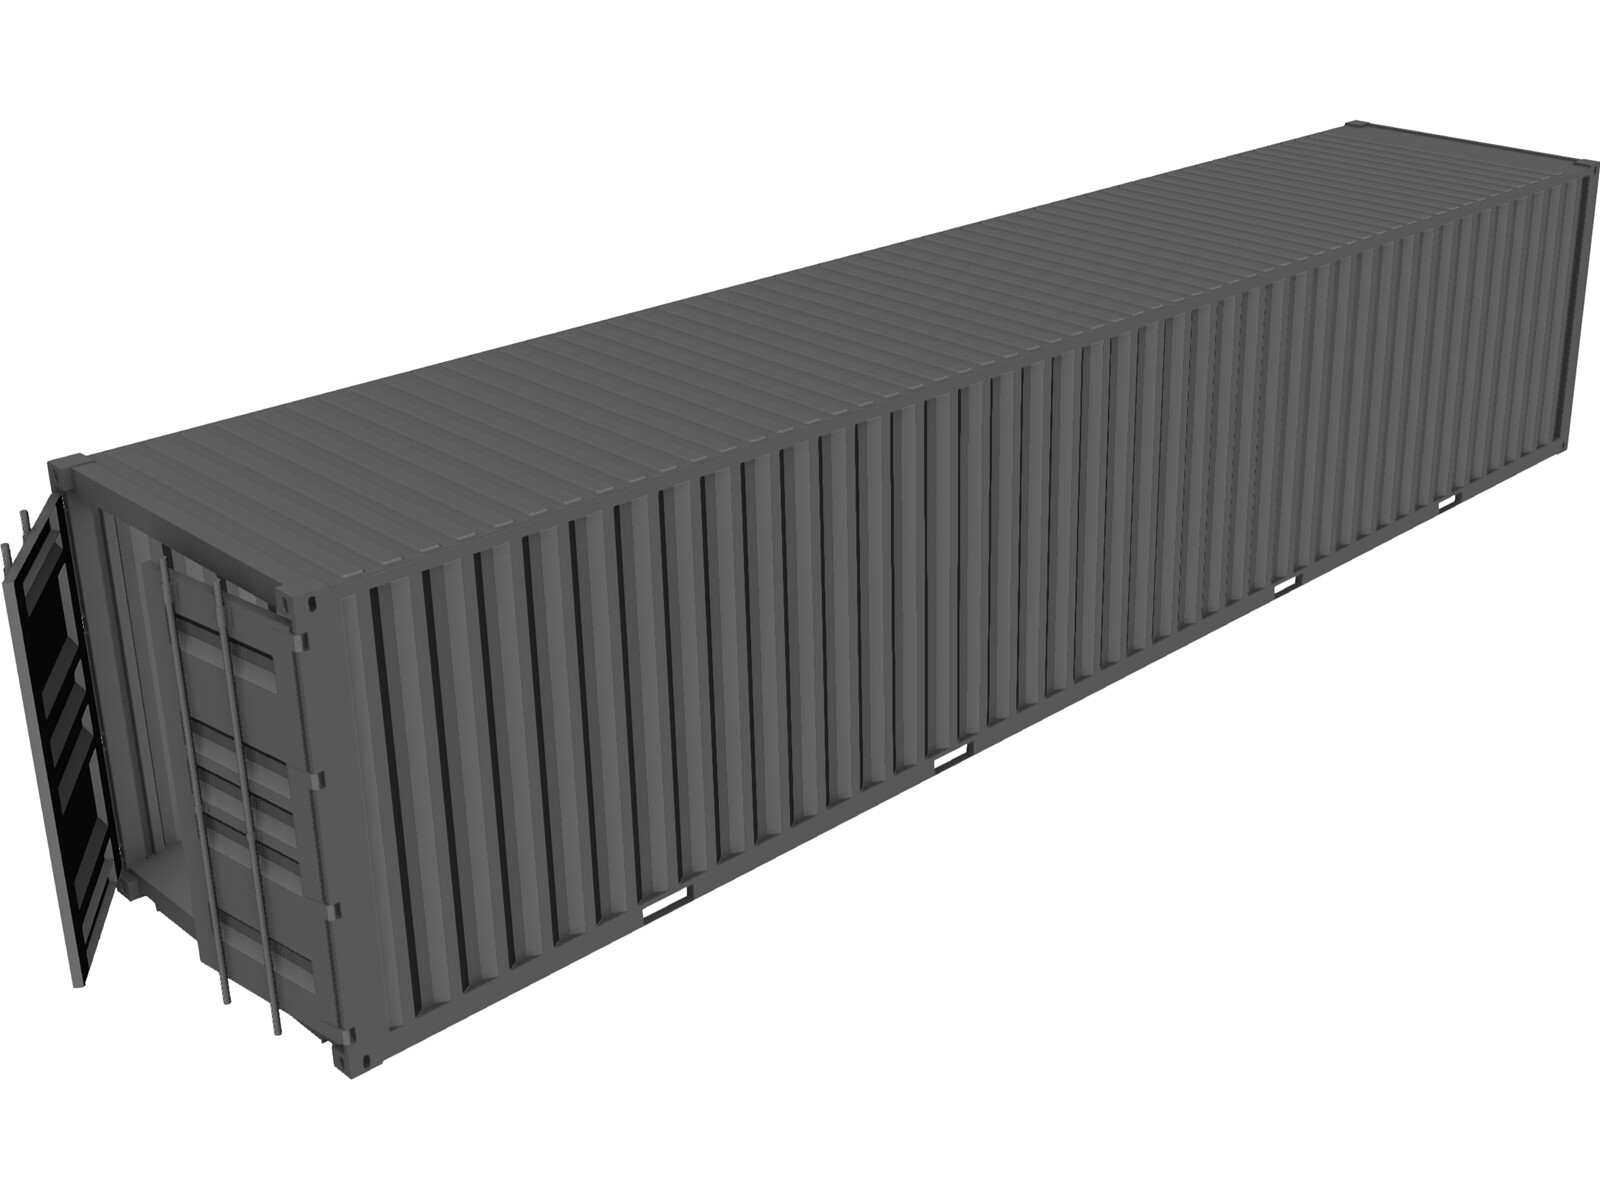 Shipping Container 40x08x08 3D CAD Model